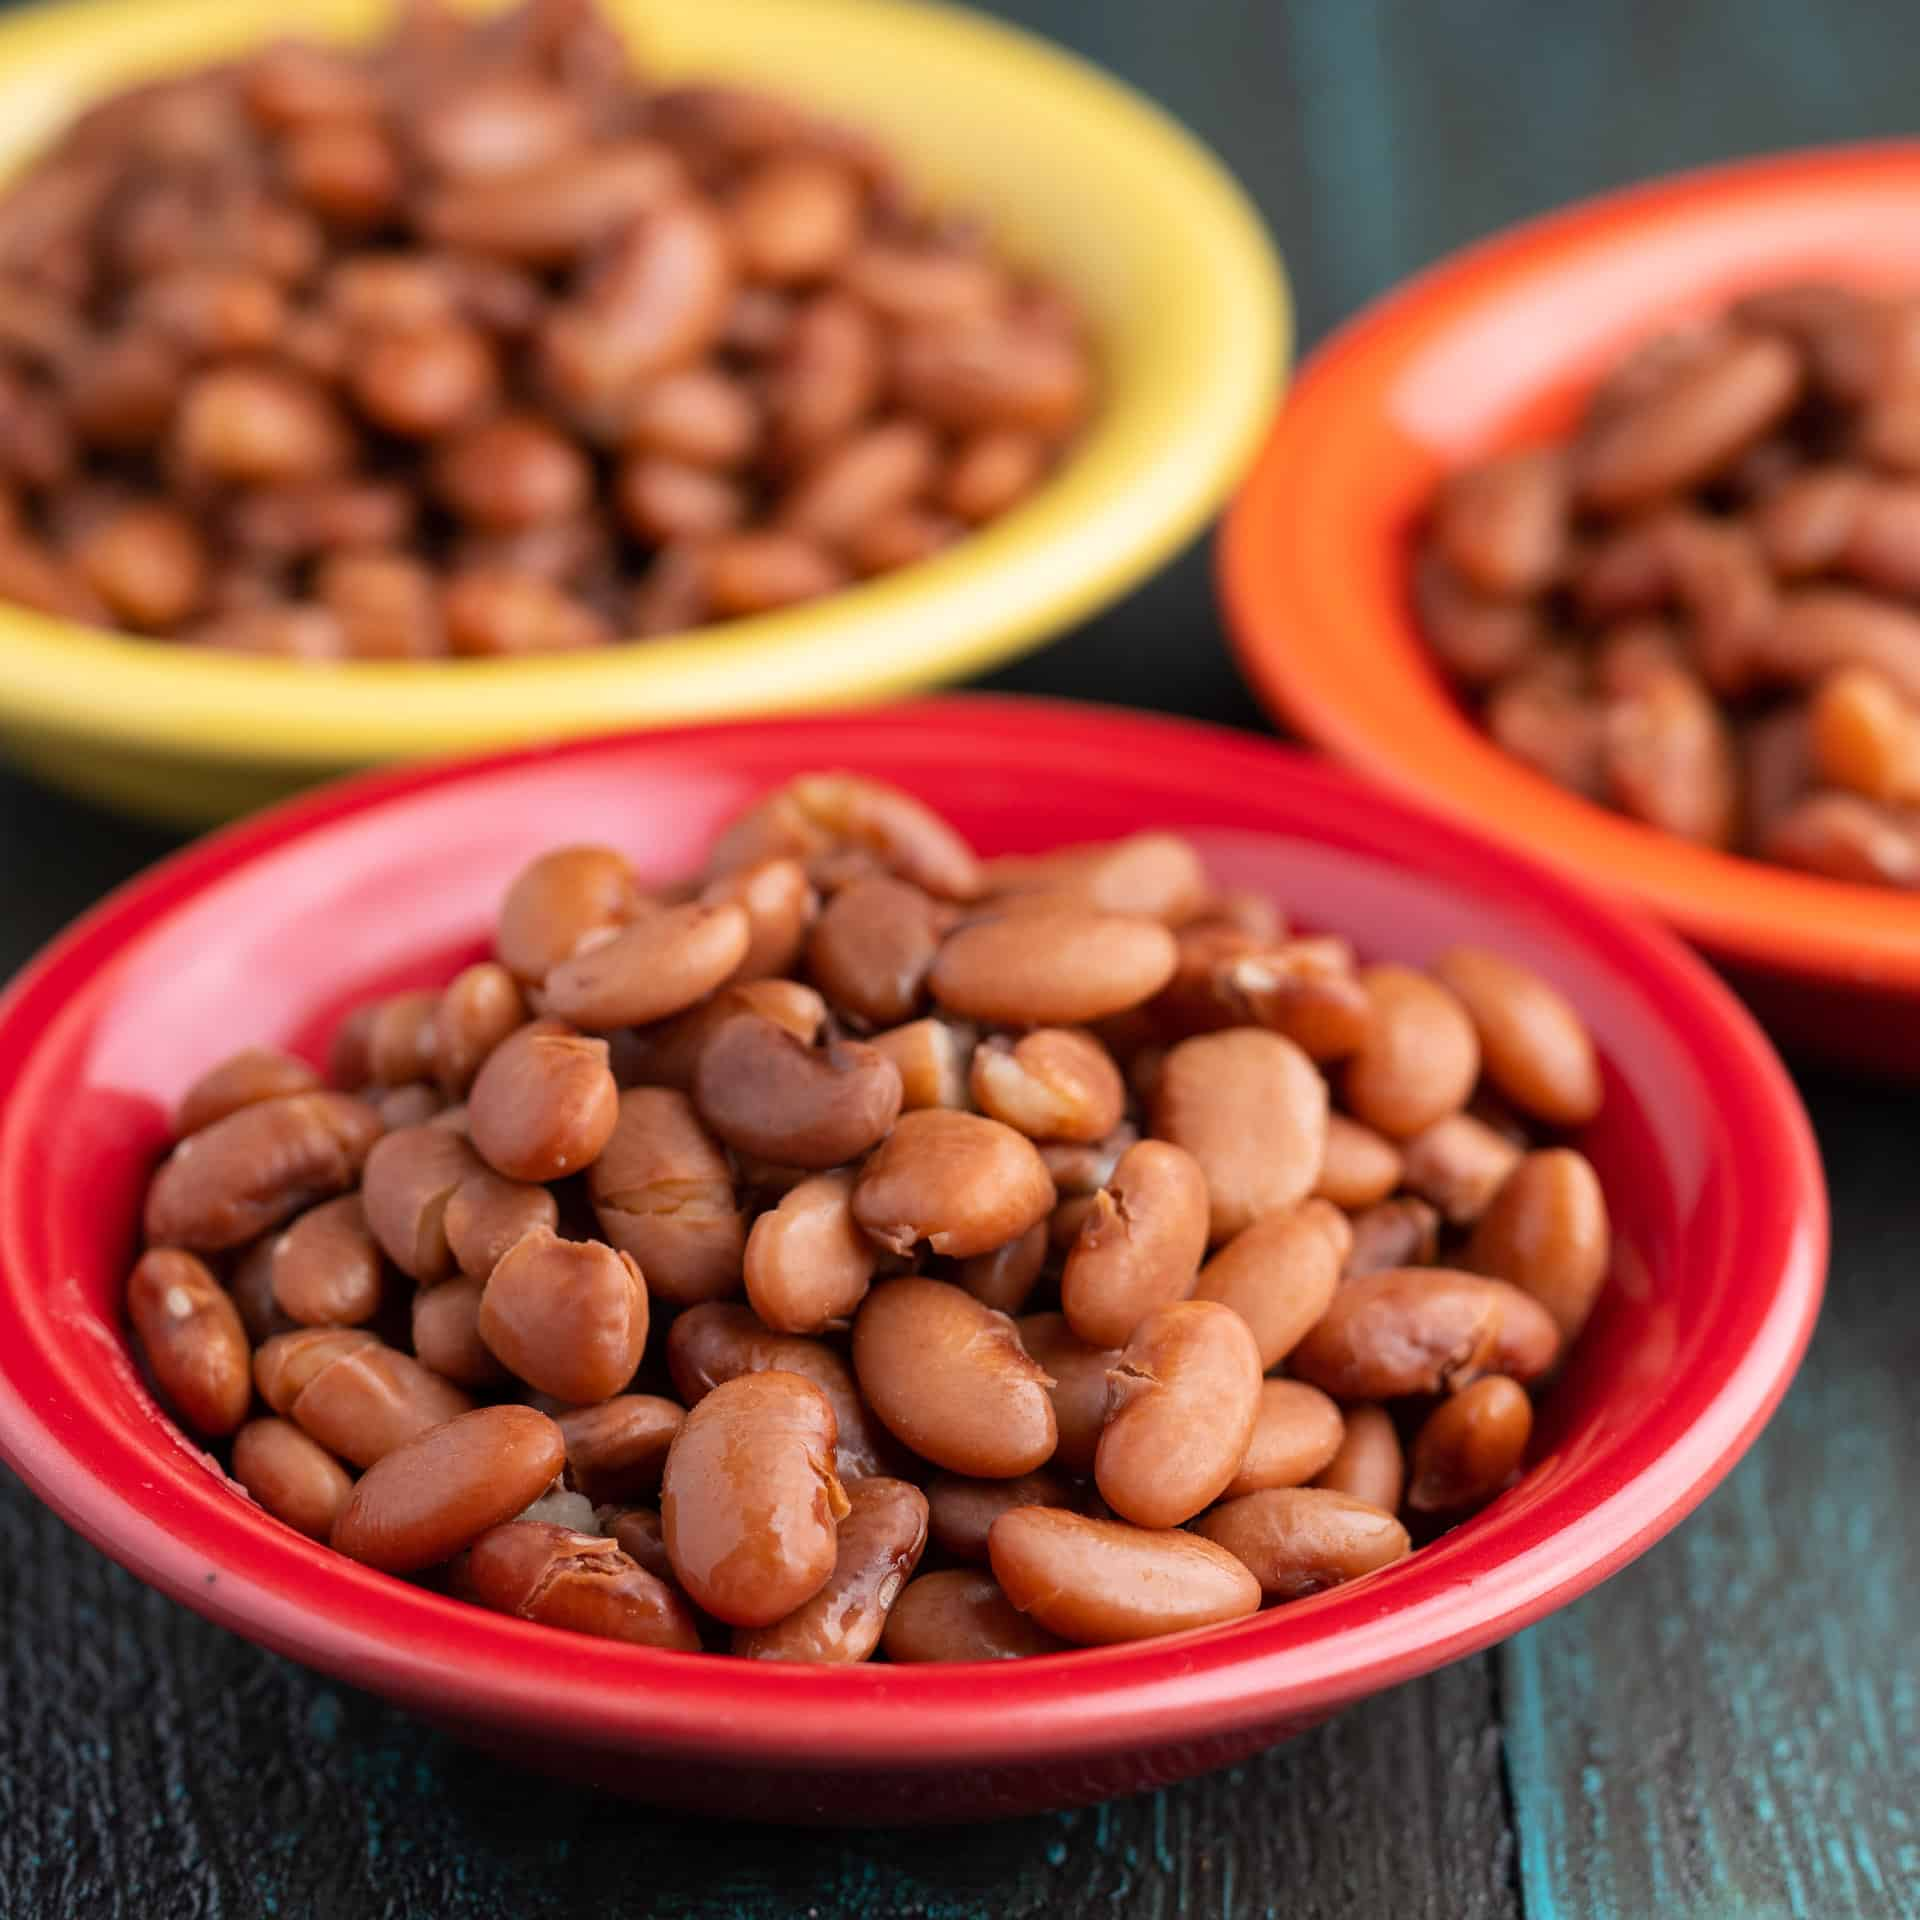 Three bowls of cooked Pinto Beans on a tabletop